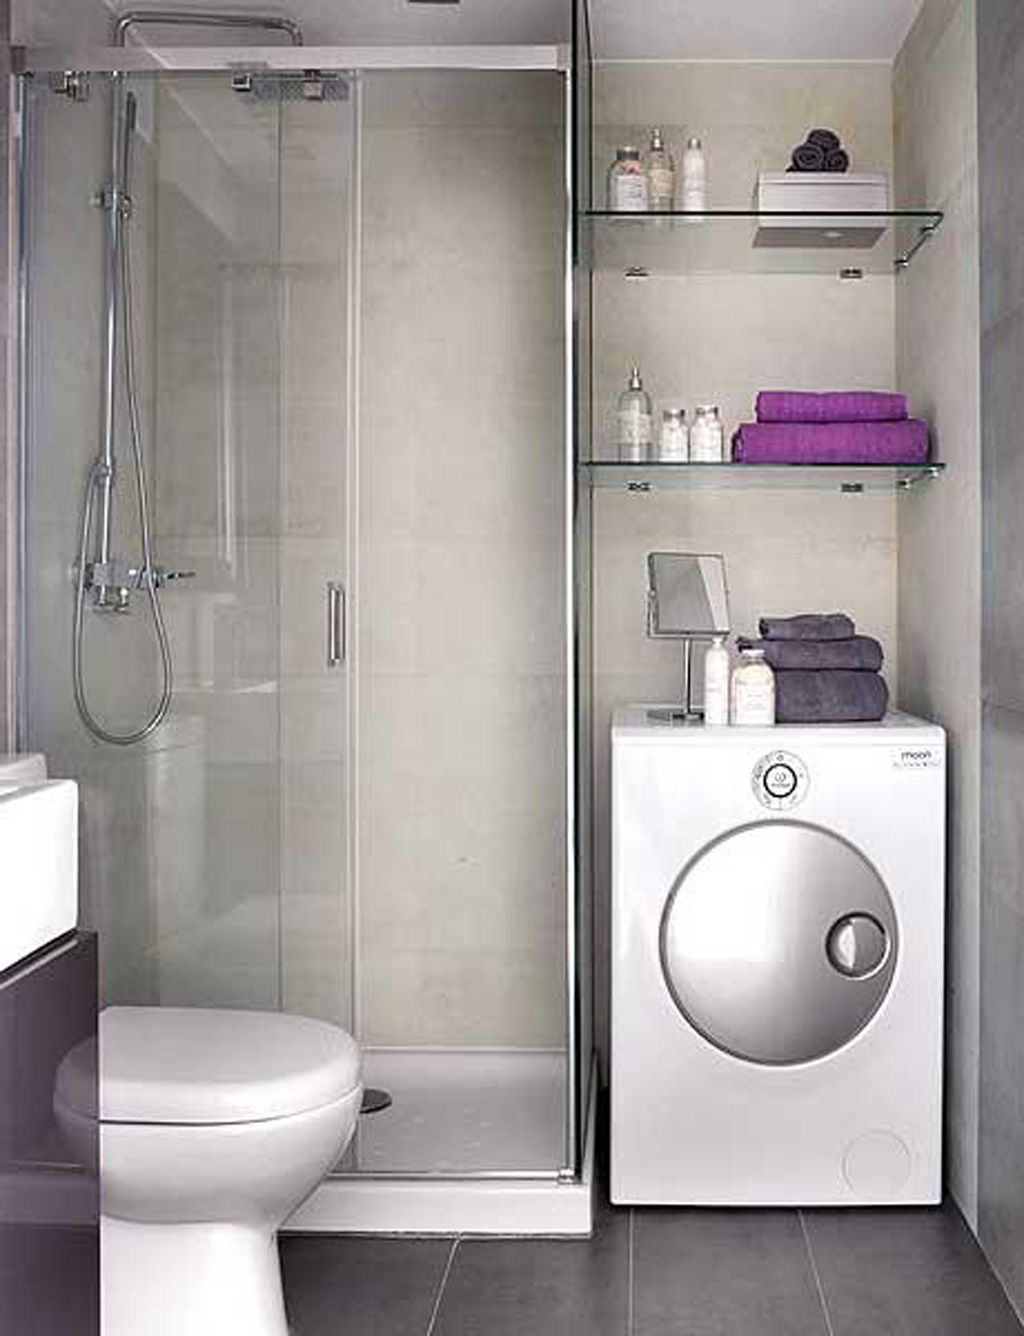 Interior Bathroom Simple Small Space Ikea Bathroom Design  With Exclusive Clear Glass Shower Room